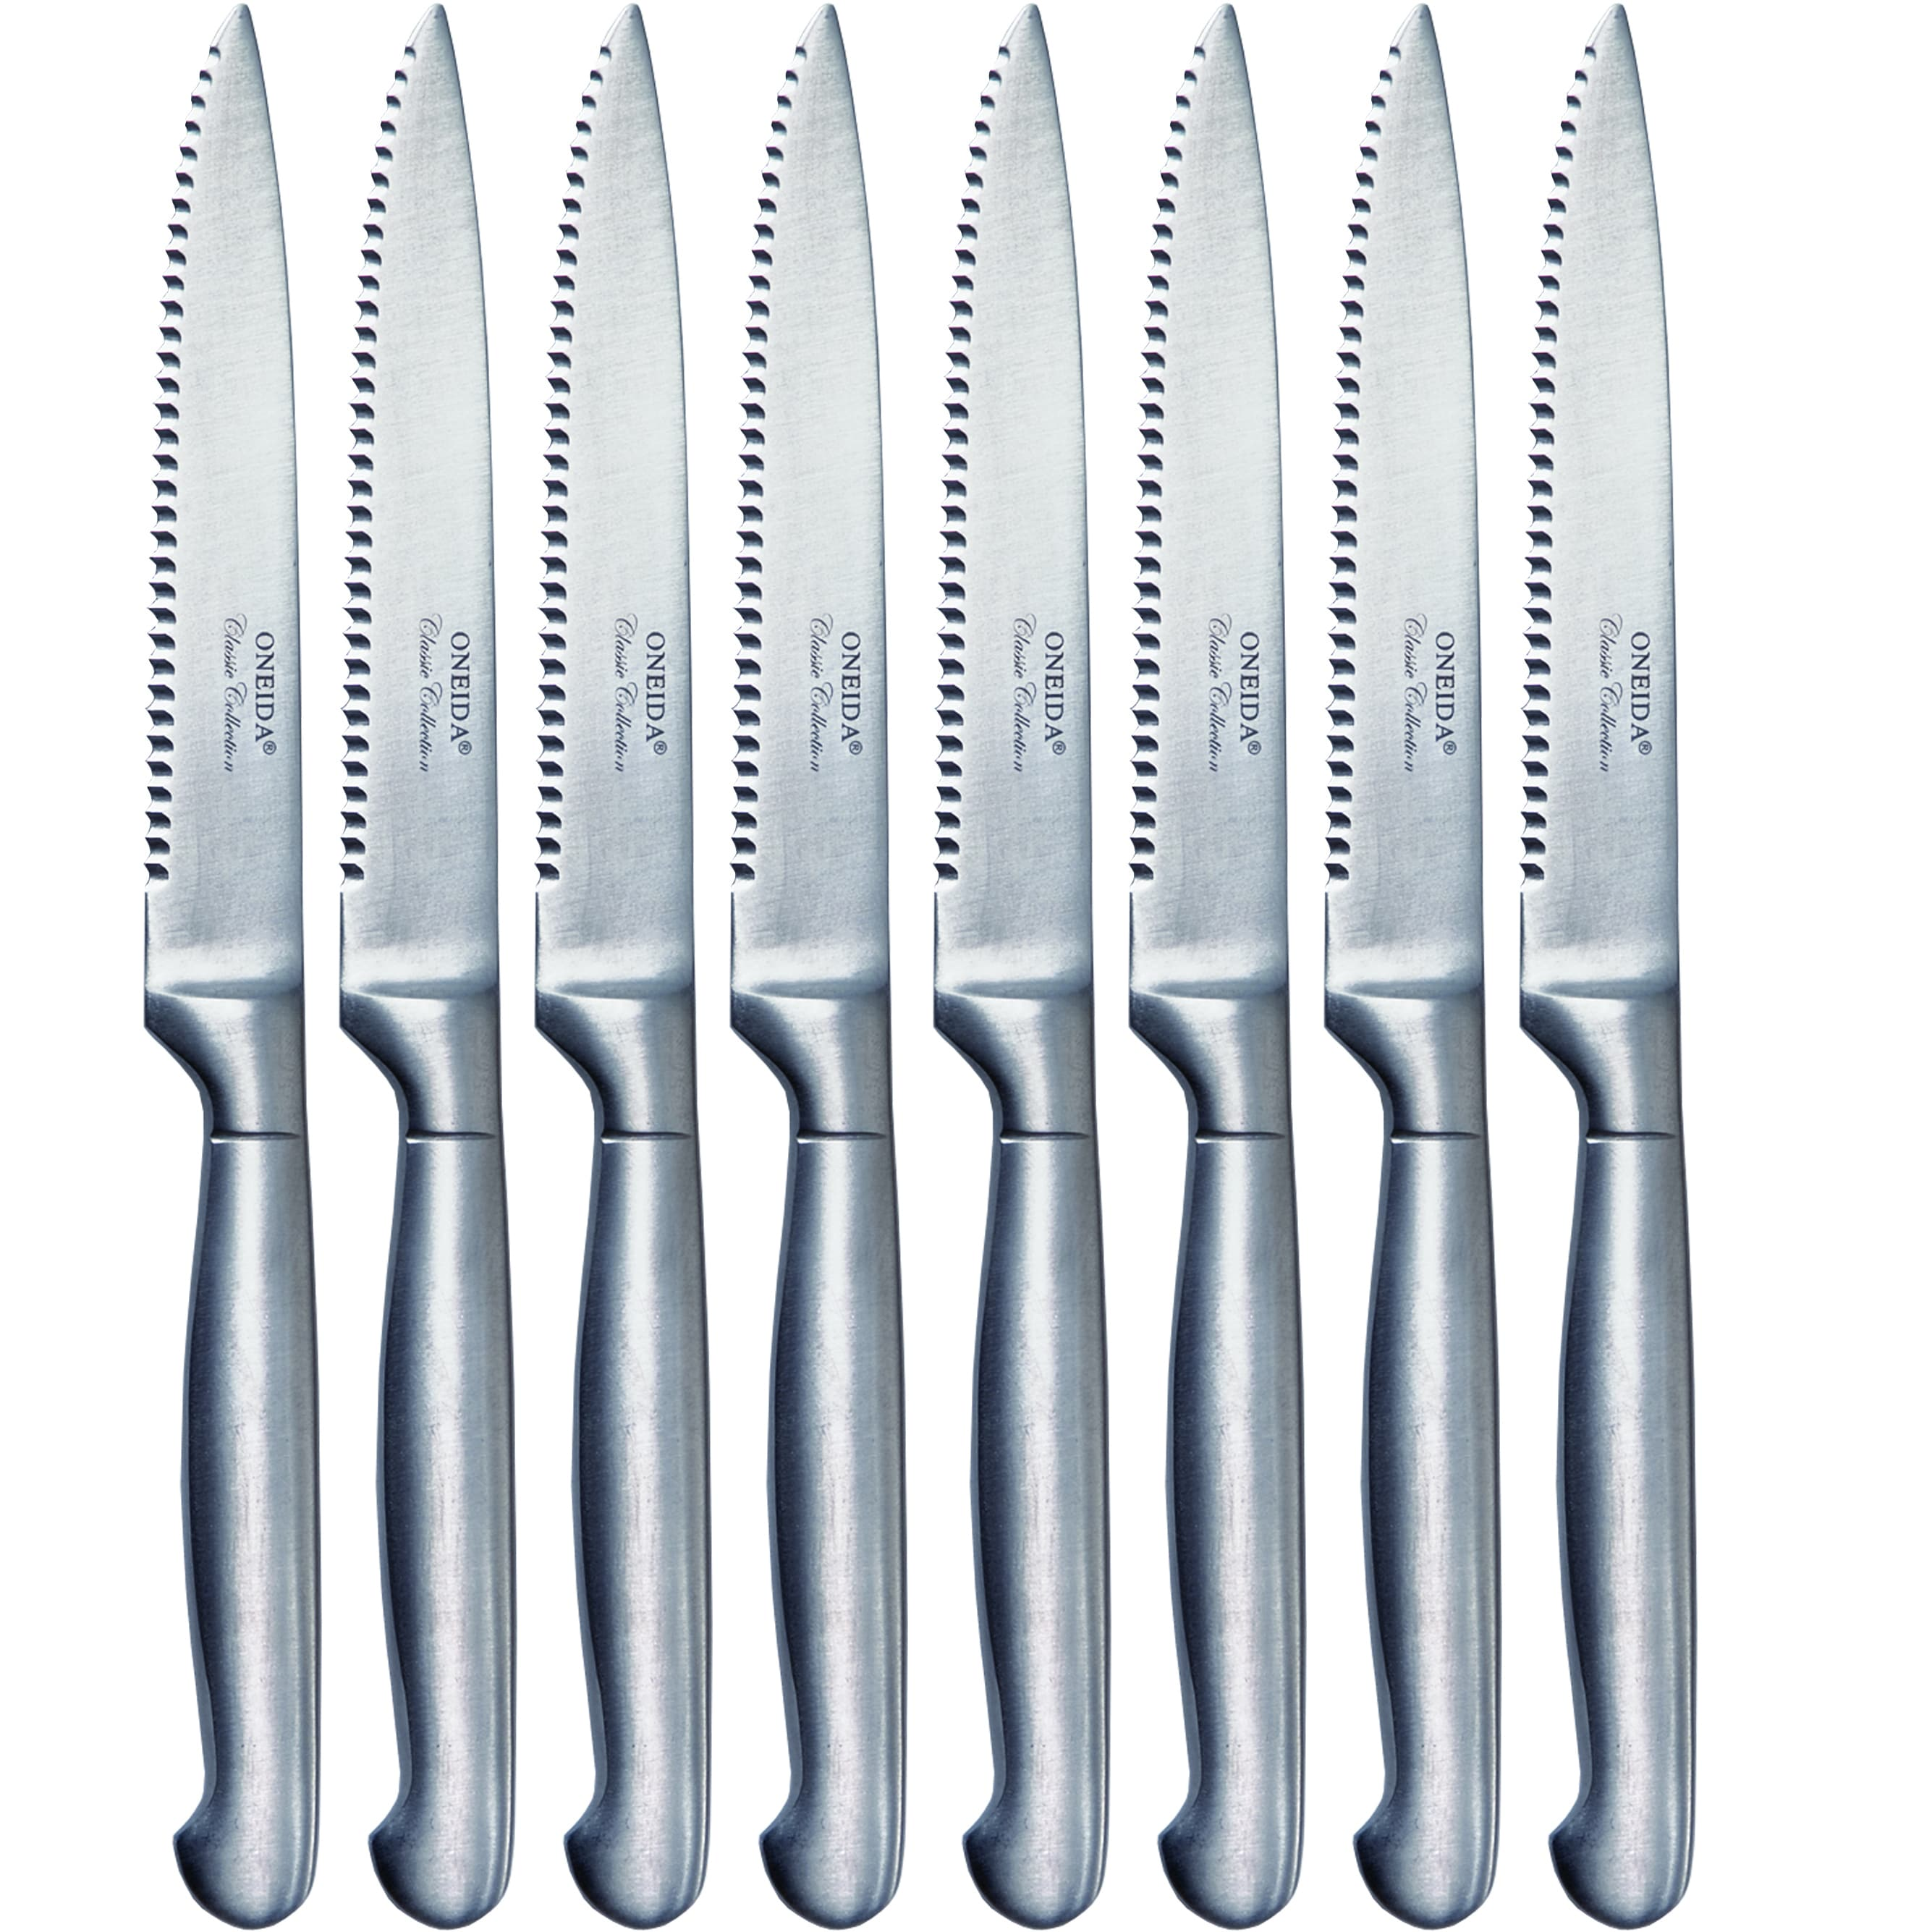 Oneida 8-piece Silver Stainless Steel Steak Knife Set - Free ...